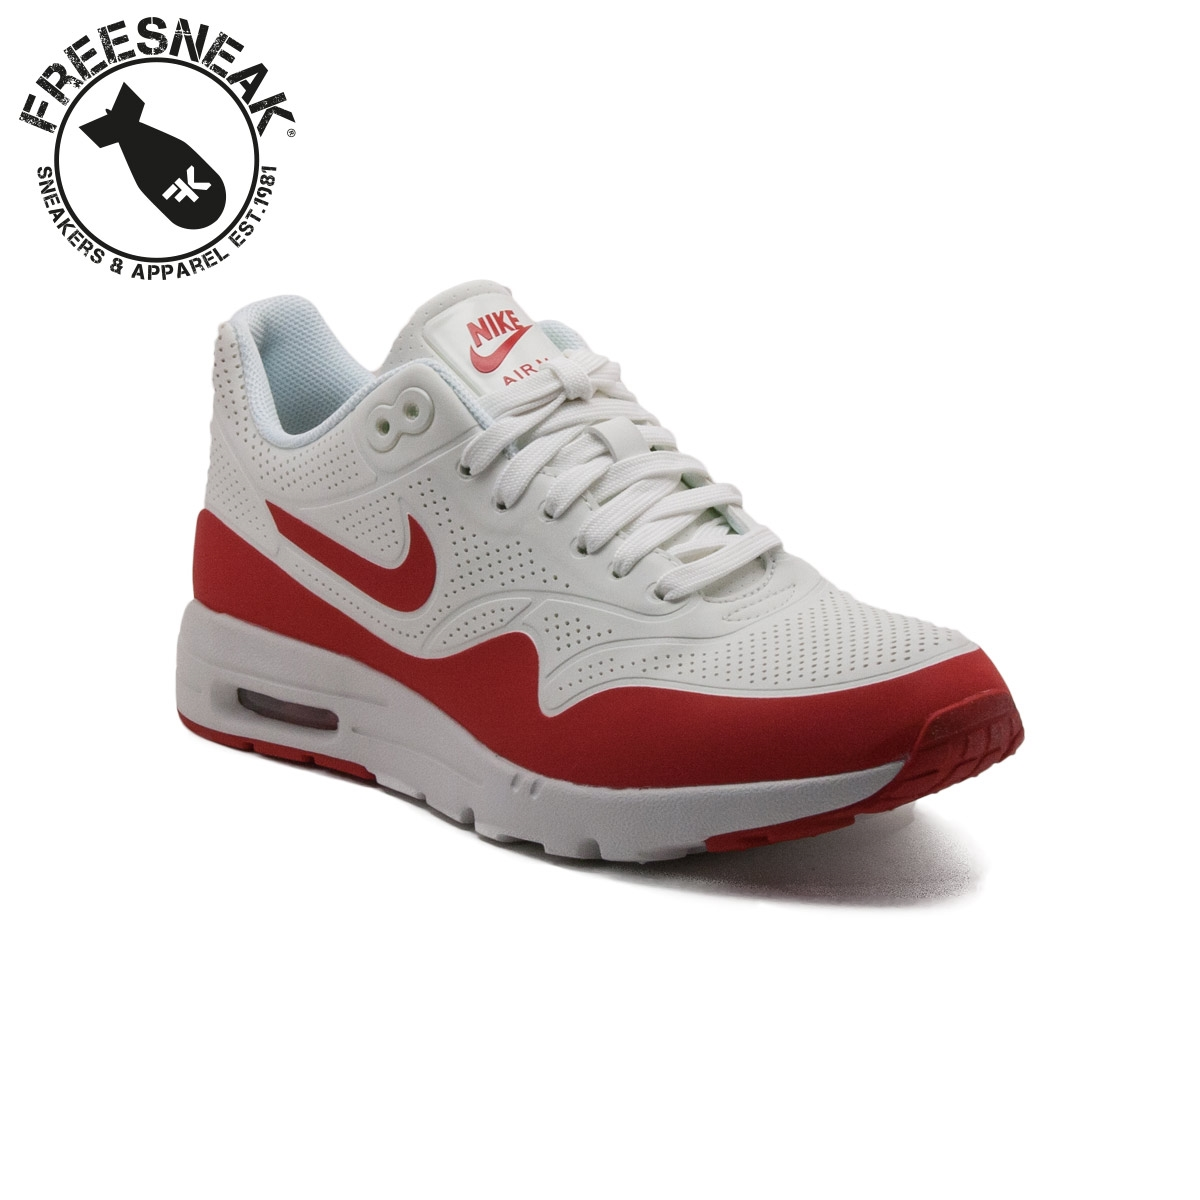 air max 1 ultra moire white red 704995 102